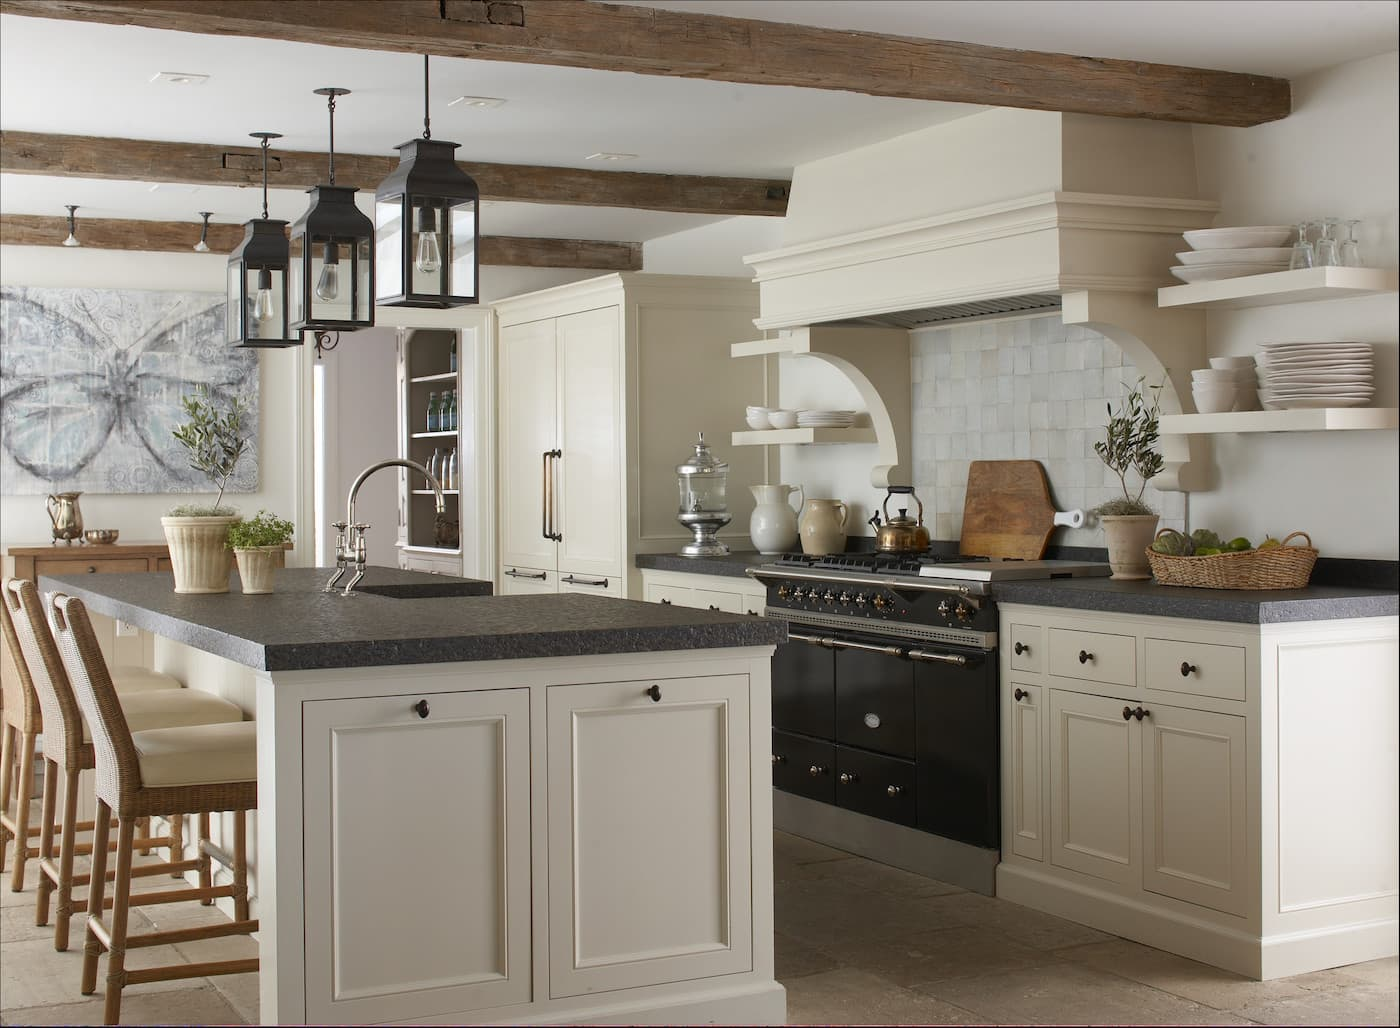 Typical classic interior of the kitchen in white with dark countertops